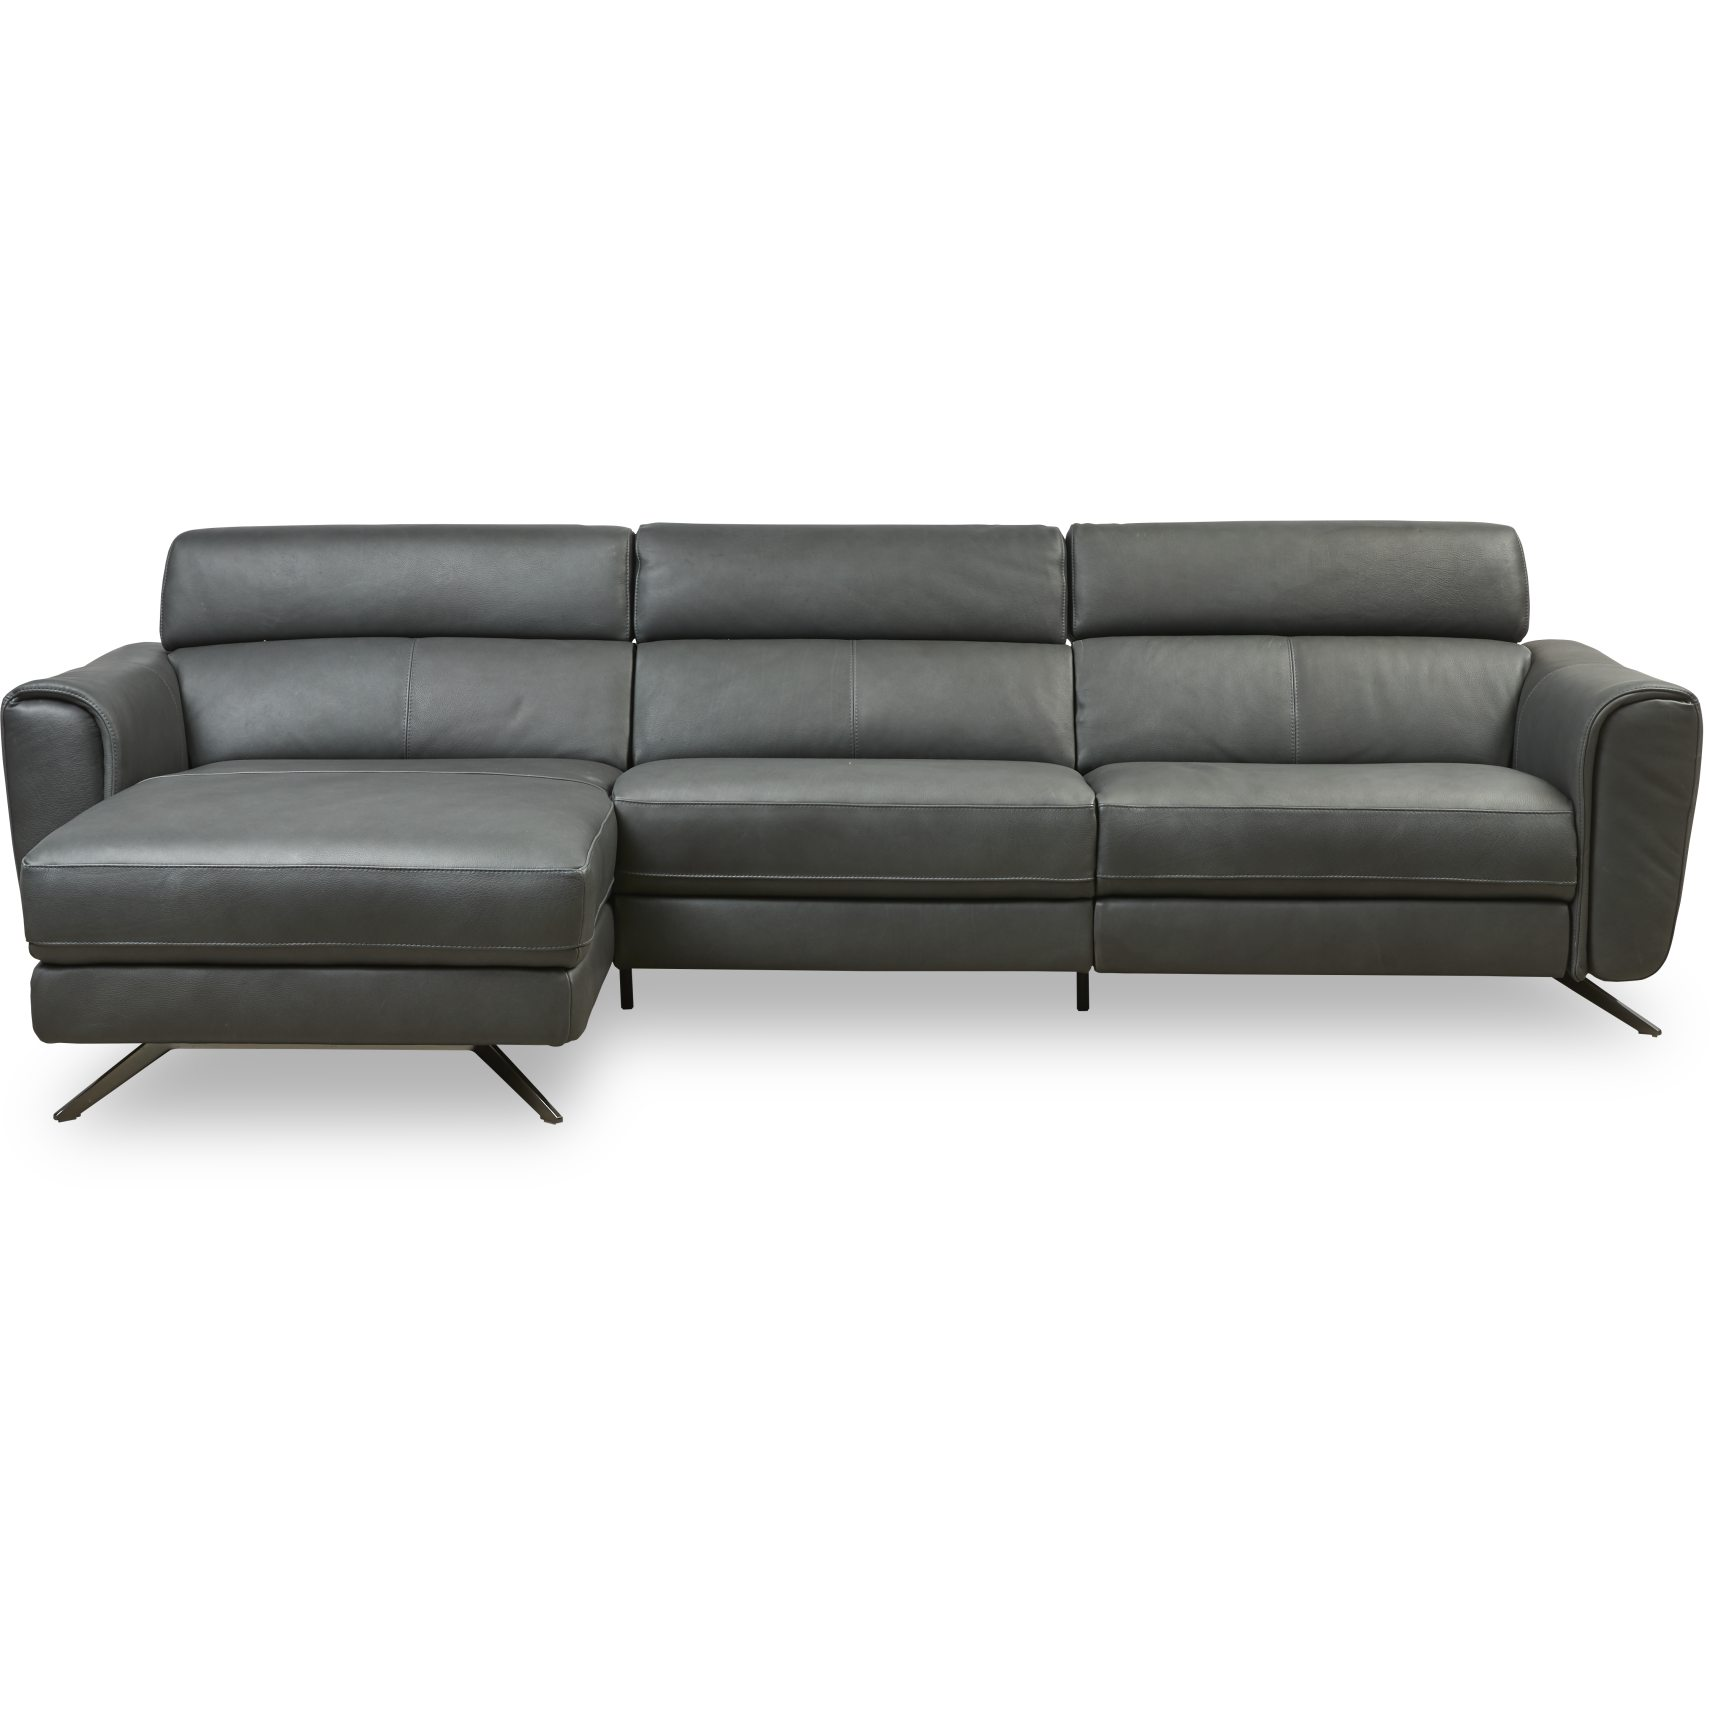 Natuzzi Editions C051 opstilling Venstre Sofa med chaiselong - Sofa med chaiselong